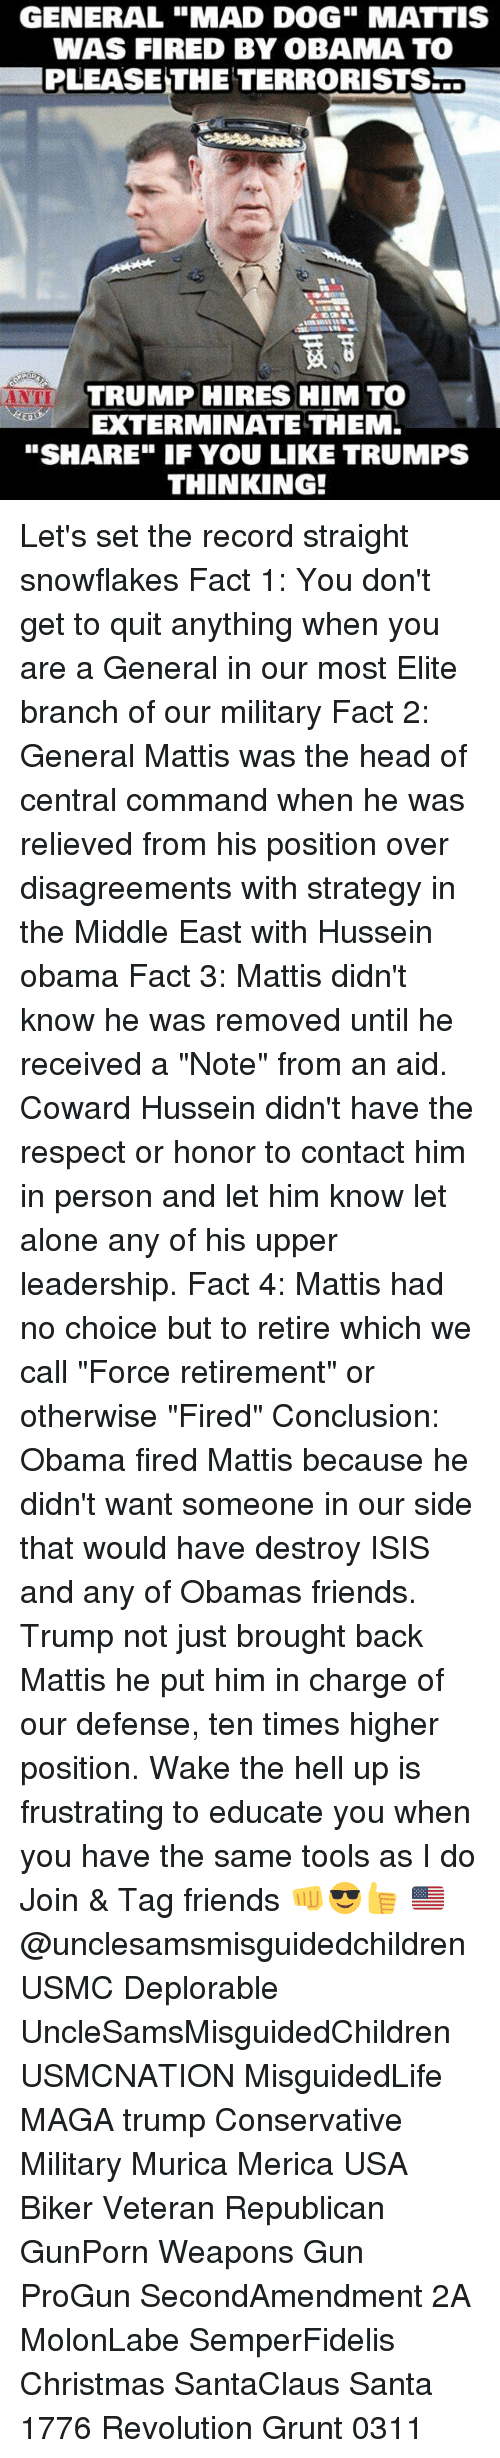 "Isis, Memes, and Quite: GENERAL ""MAD DOG"" MATTIS  WAS FIRED BY OBAMA TO  PLEASE THE TERRORISTS  TRUMP HIRES HIM TO  EXTERMINATE THEM.  ""SHARE"" IF YOU LIKE TRUMPS  THINKING! Let's set the record straight snowflakes Fact 1: You don't get to quit anything when you are a General in our most Elite branch of our military Fact 2: General Mattis was the head of central command when he was relieved from his position over disagreements with strategy in the Middle East with Hussein obama Fact 3: Mattis didn't know he was removed until he received a ""Note"" from an aid. Coward Hussein didn't have the respect or honor to contact him in person and let him know let alone any of his upper leadership. Fact 4: Mattis had no choice but to retire which we call ""Force retirement"" or otherwise ""Fired"" Conclusion: Obama fired Mattis because he didn't want someone in our side that would have destroy ISIS and any of Obamas friends. Trump not just brought back Mattis he put him in charge of our defense, ten times higher position. Wake the hell up is frustrating to educate you when you have the same tools as I do Join & Tag friends 👊😎👍 🇺🇸@unclesamsmisguidedchildren USMC Deplorable UncleSamsMisguidedChildren USMCNATION MisguidedLife MAGA trump Conservative Military Murica Merica USA Biker Veteran Republican GunPorn Weapons Gun ProGun SecondAmendment 2A MolonLabe SemperFidelis Christmas SantaClaus Santa 1776 Revolution Grunt 0311"